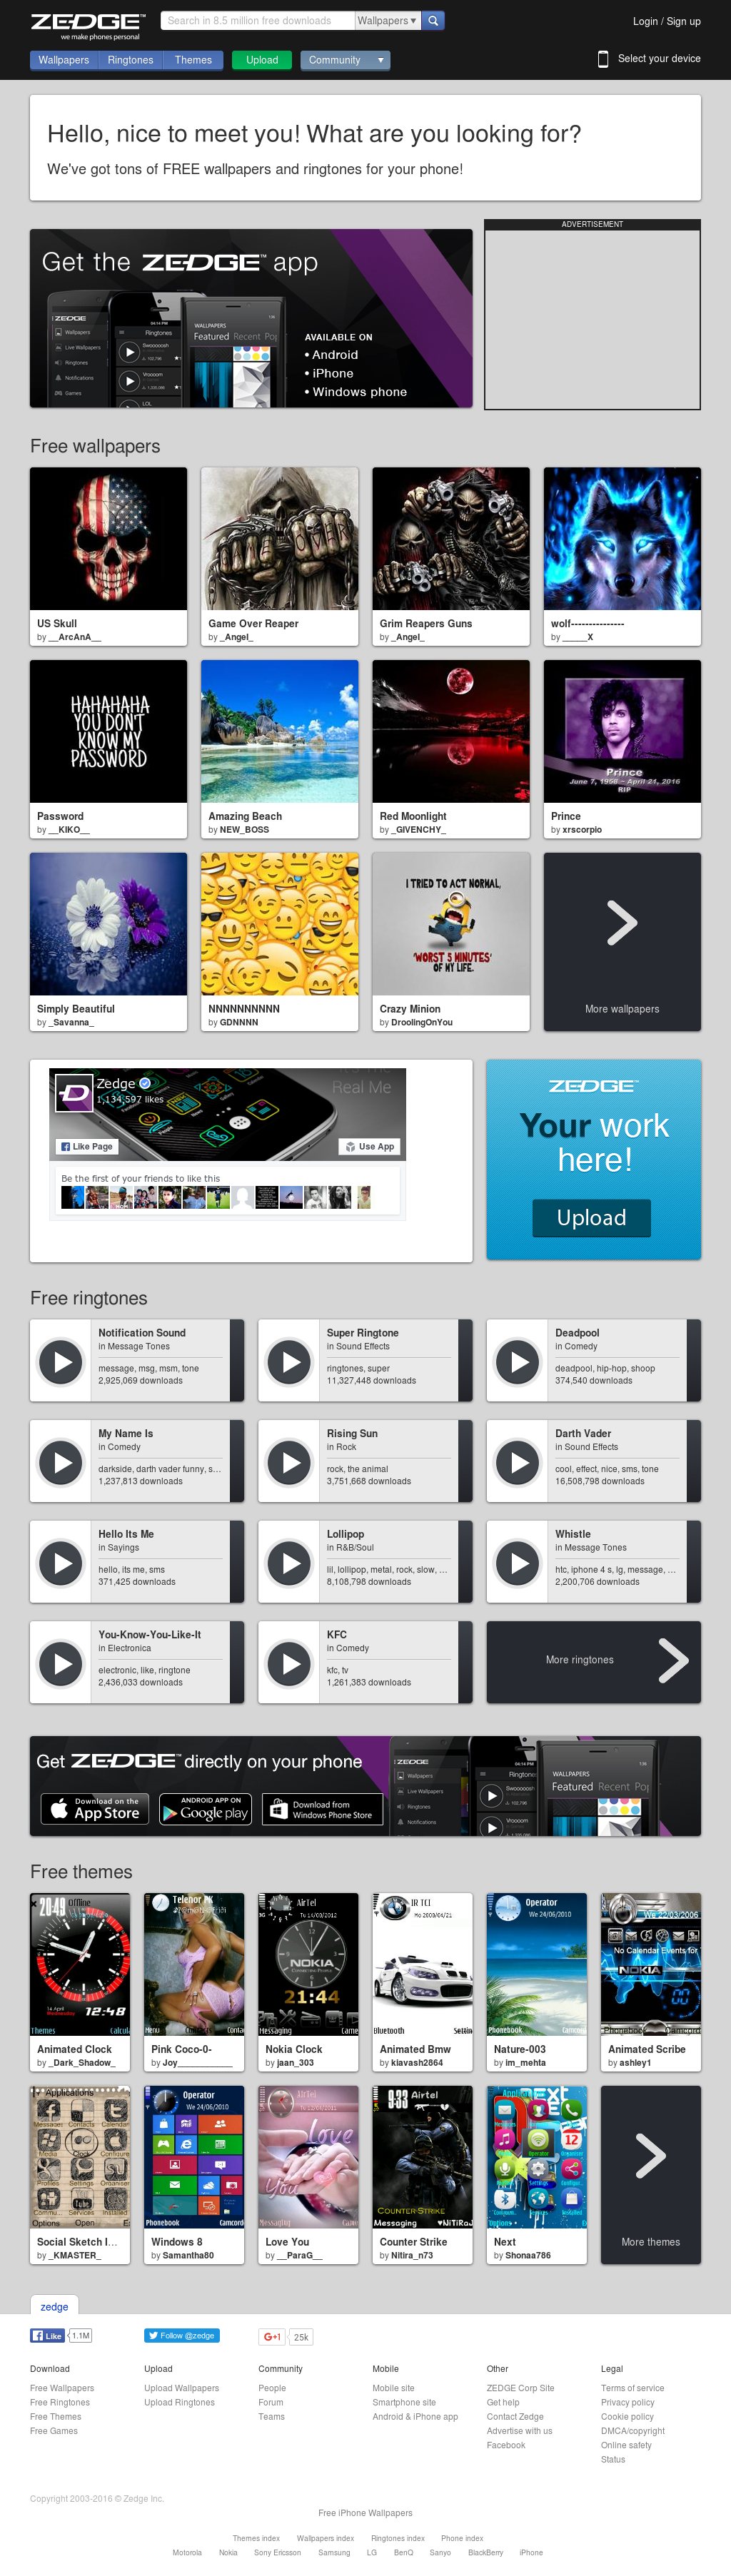 Zedge Competitors, Revenue and Employees - Owler Company Profile